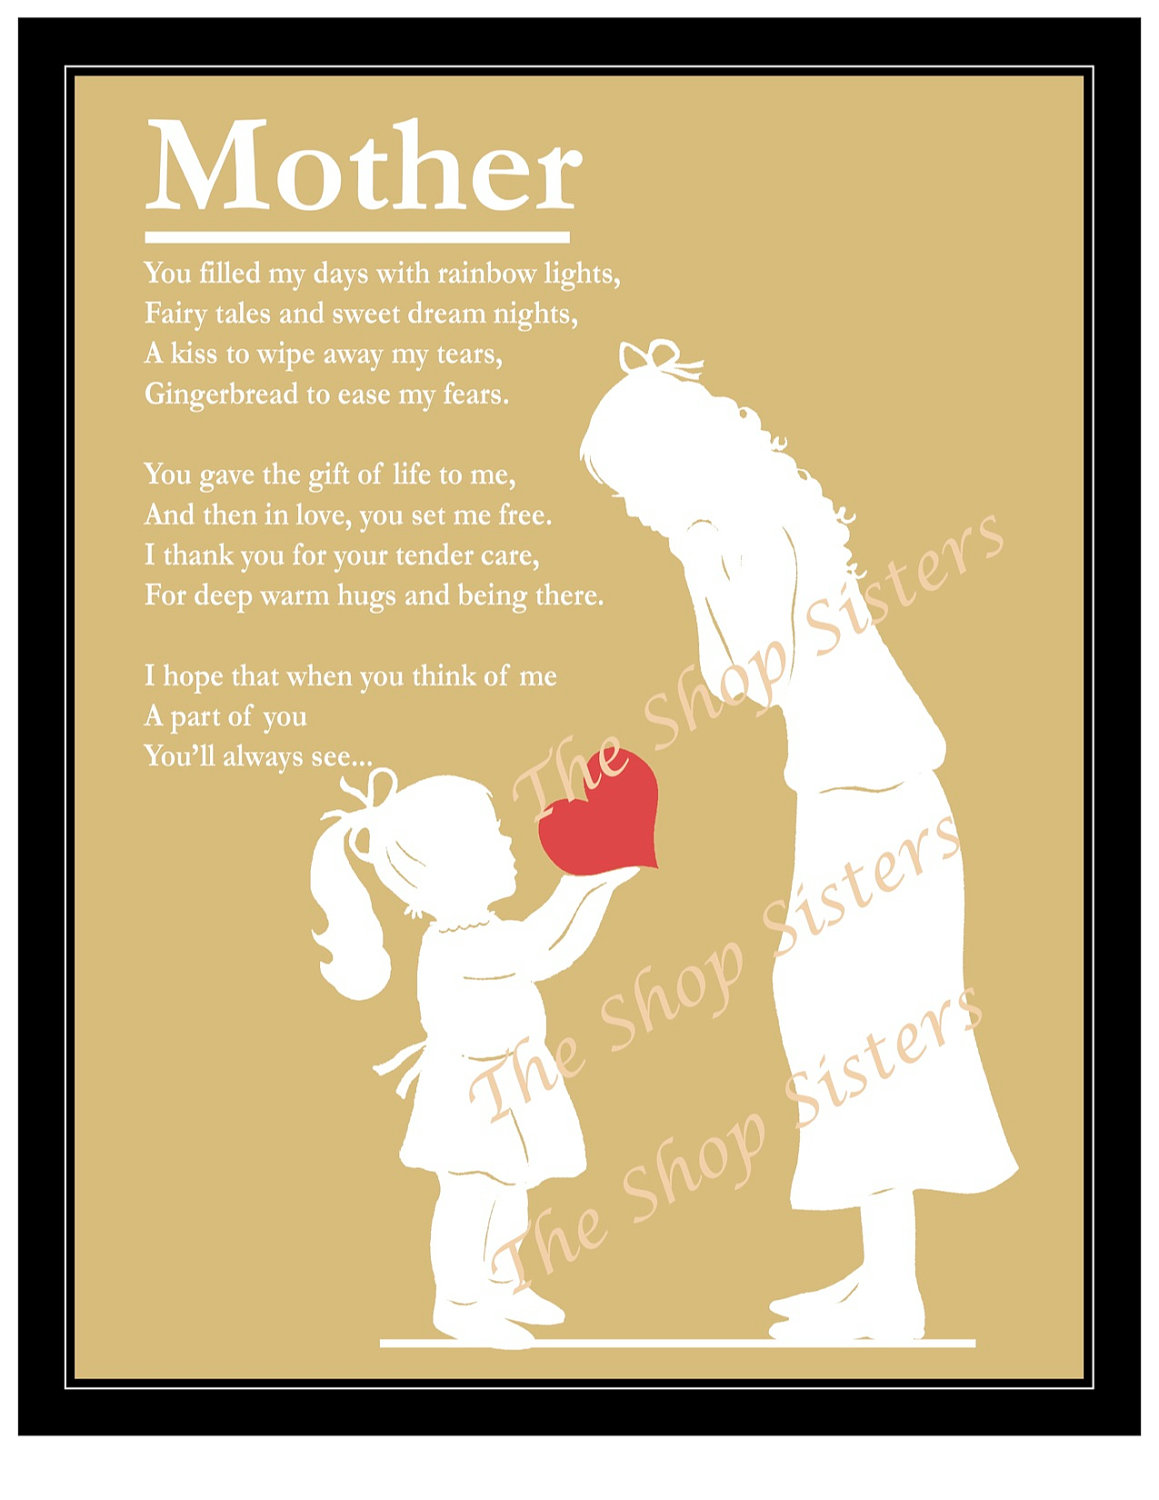 poem about a mother and daughter relationship